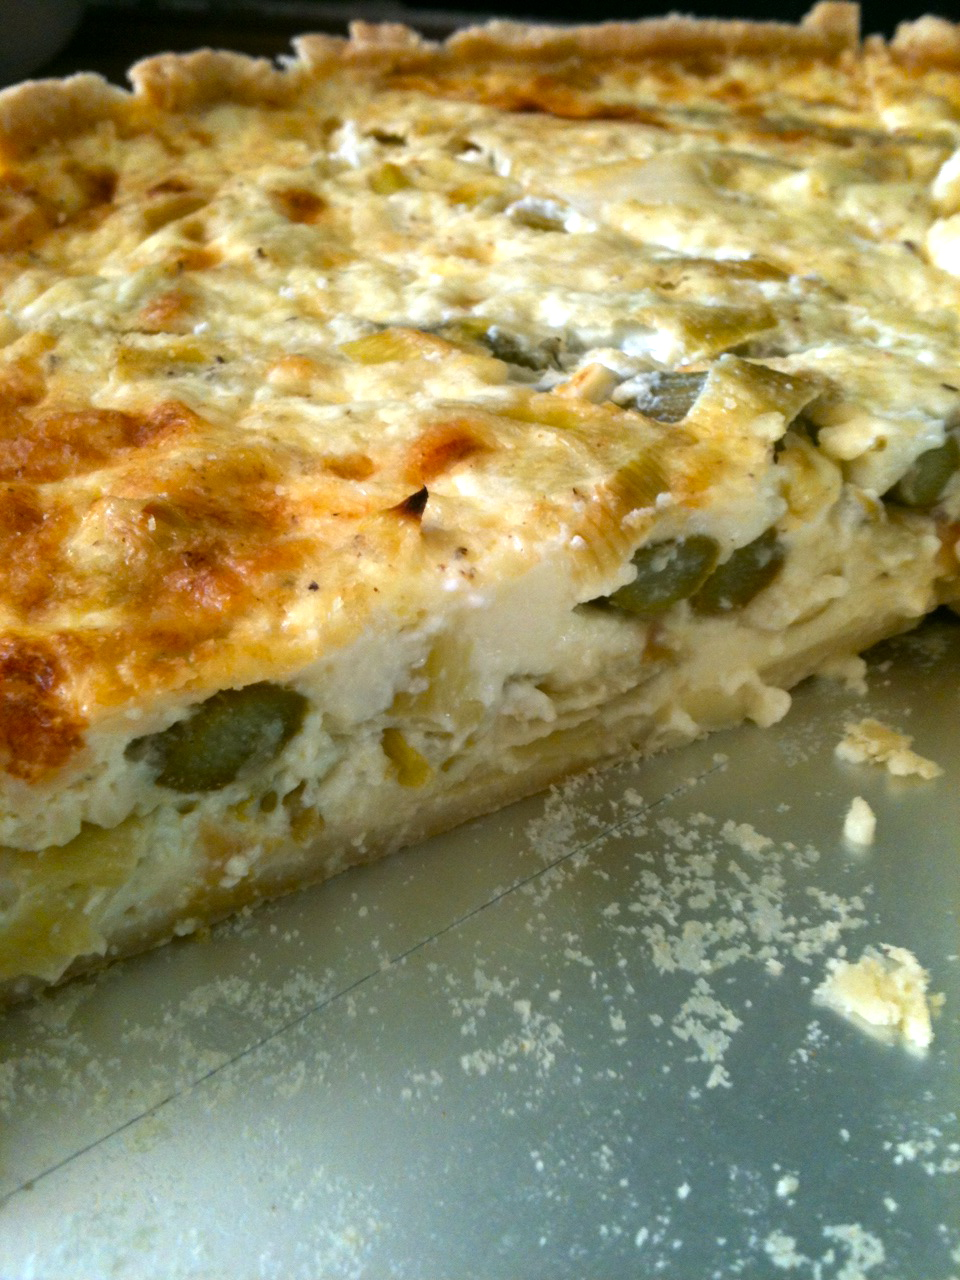 Asparagus, leek and gruyere quiche | Lesley's Kitchen, Artisan ...